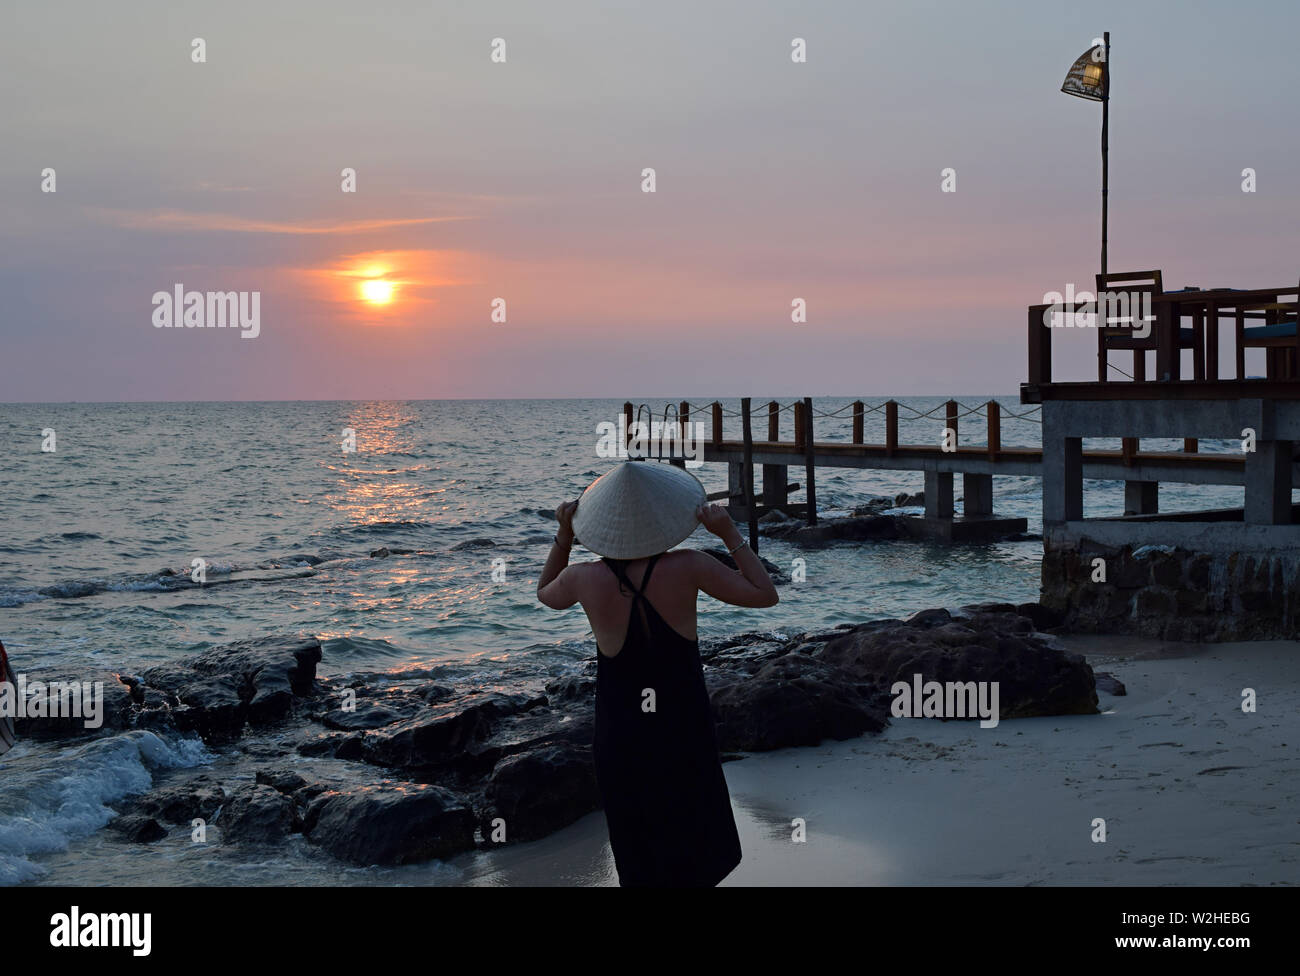 Young attractive woman at the seashore in Vietnam wearing a typical hat staring at the sunset. Young lady watching sunset over the South China Sea in the pier. Stock Photo